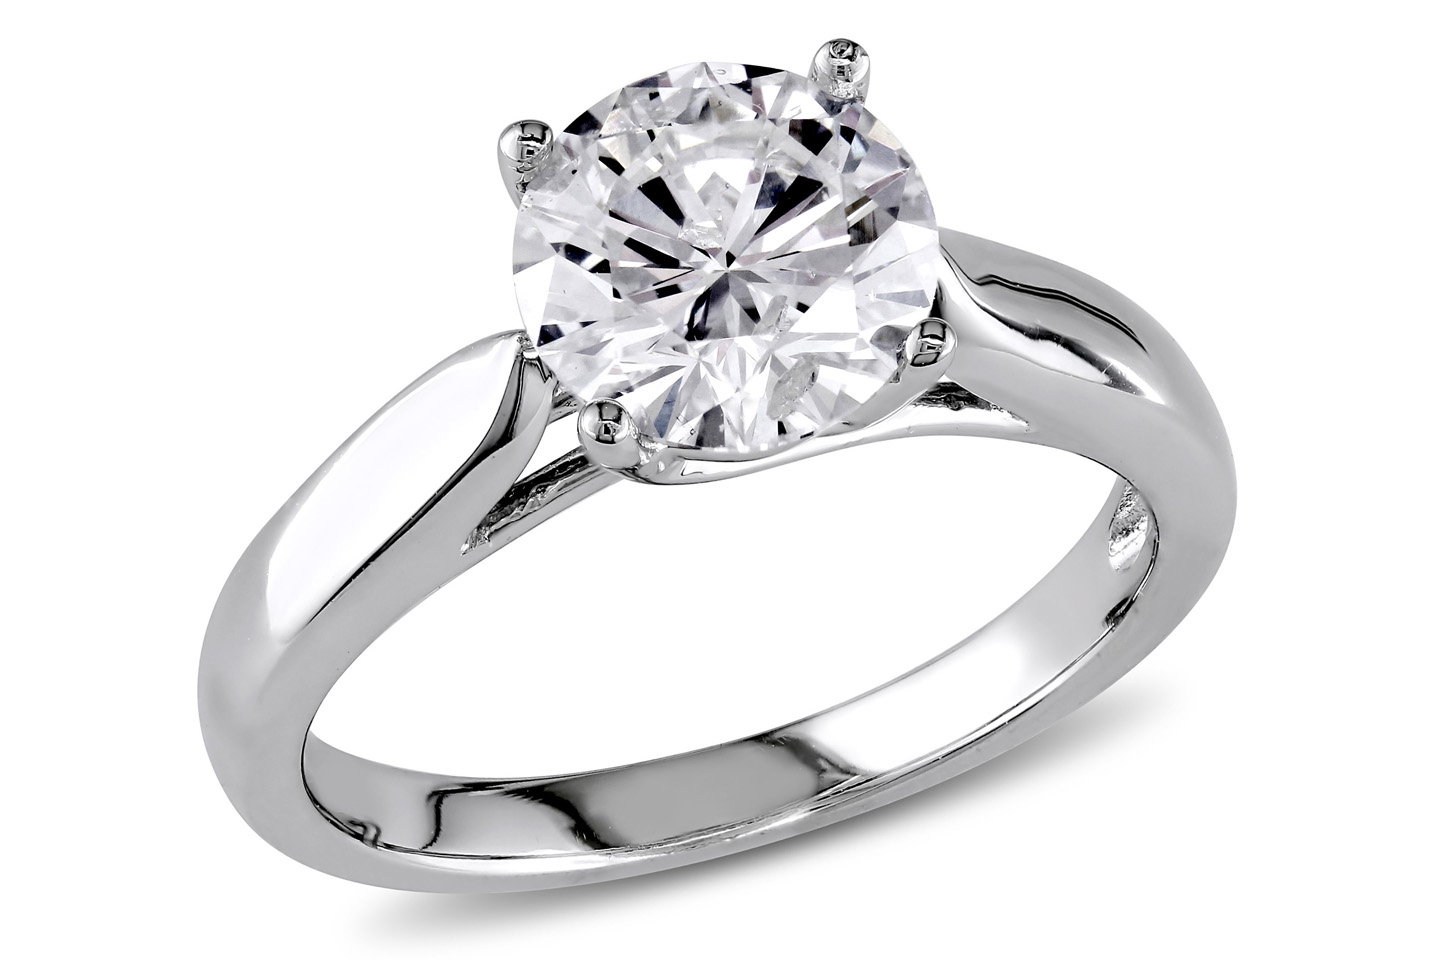 women carat rings expensive most ideas ring jewellery for with wedding brands regard diamond to